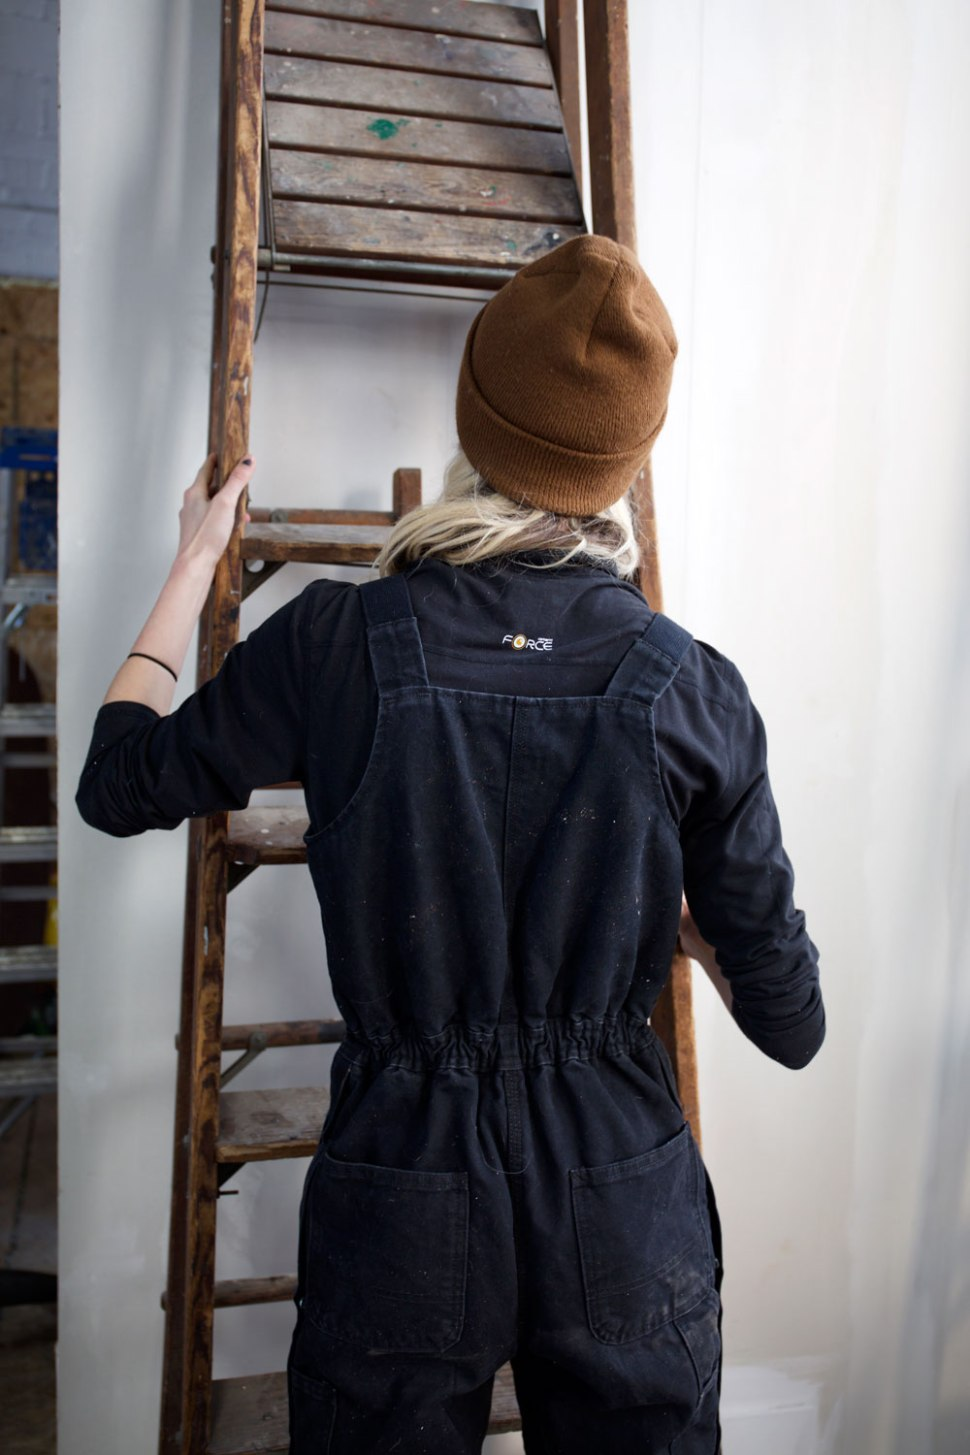 Studio Assistant, Emilee Austin / Crafted in Carhartt